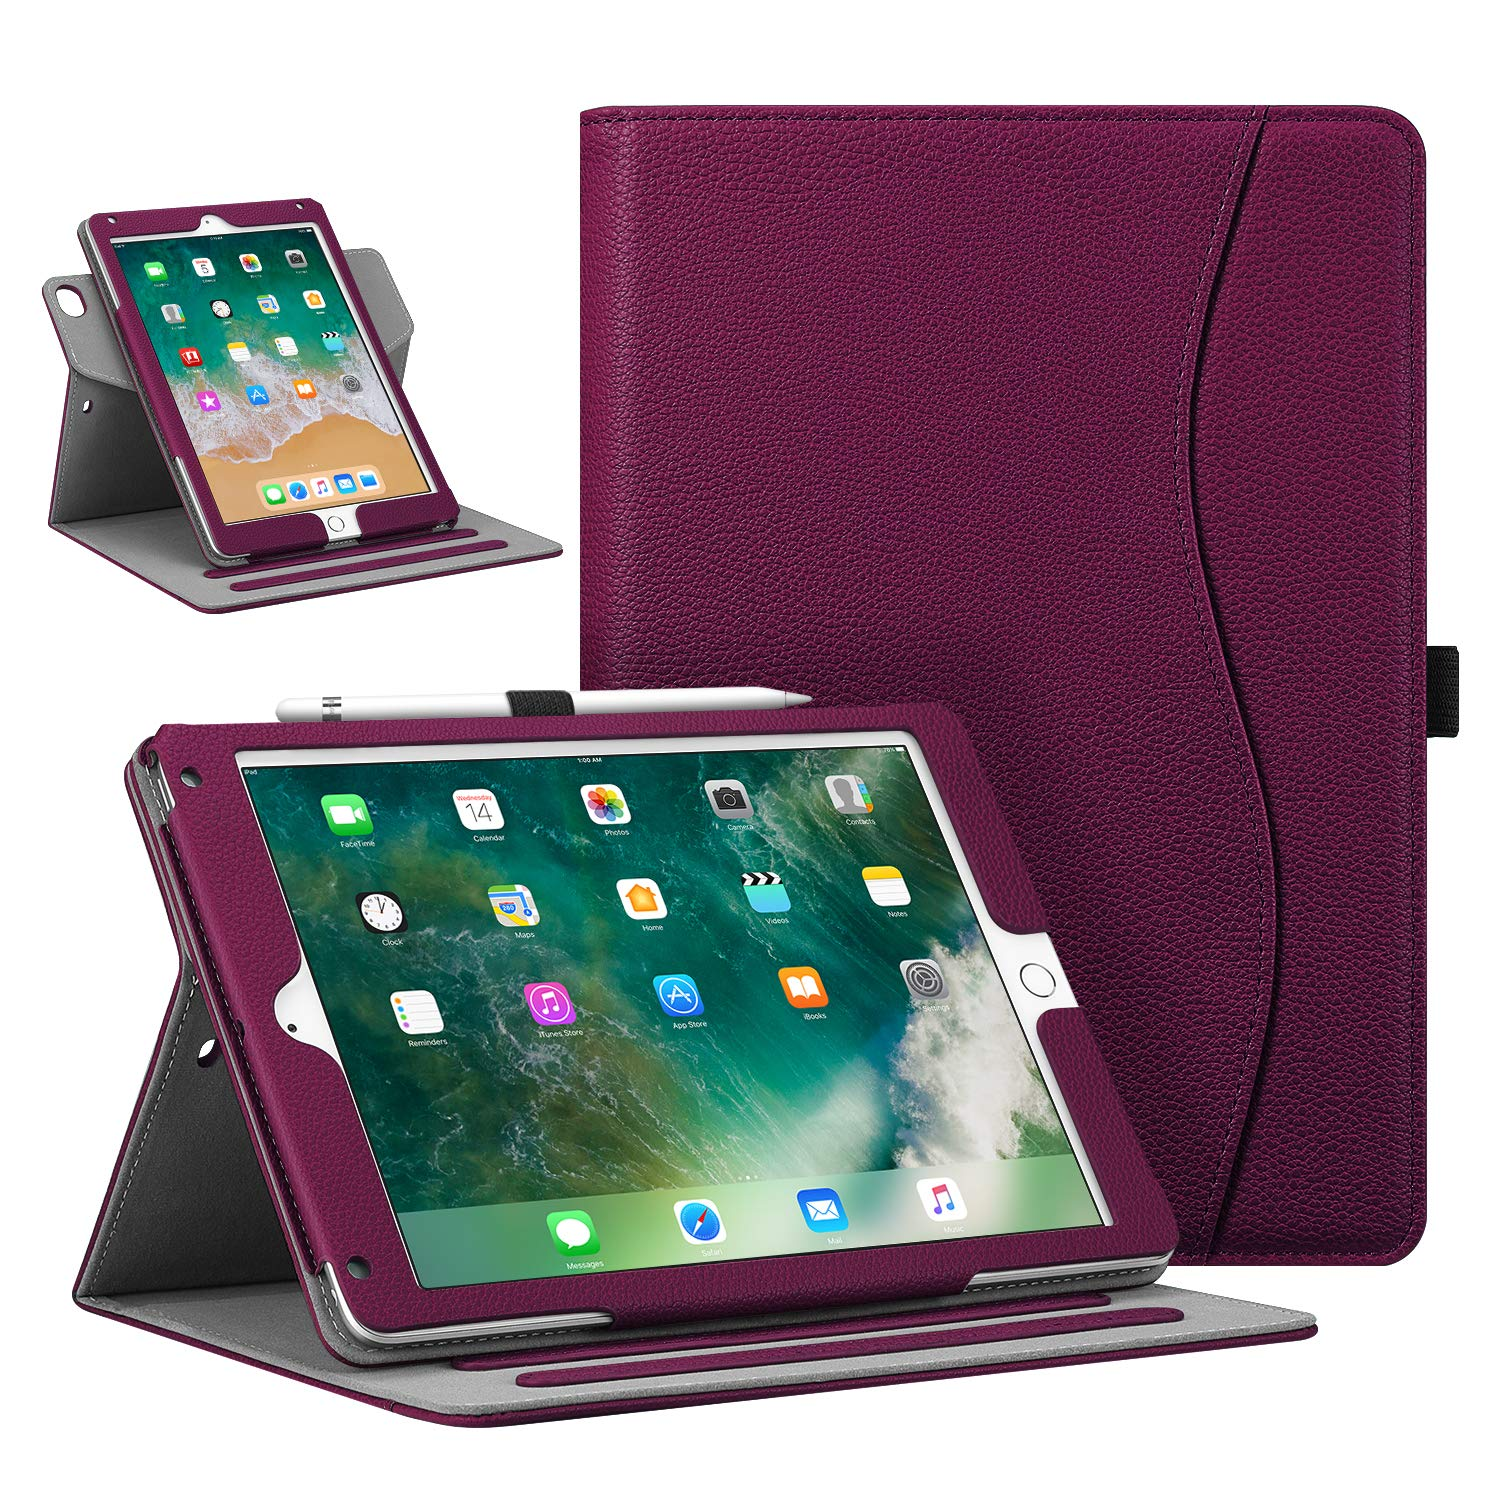 """Fintie Case for iPad 9.7"""" 2018/2017, iPad Air 2 / iPad Air - [Corner Protection] 360 Degree Rotating Smart Stand Cover with Pocket, Pencil Holder, Auto Sleep/Wake for iPad 6th / 5th Gen, Purple"""